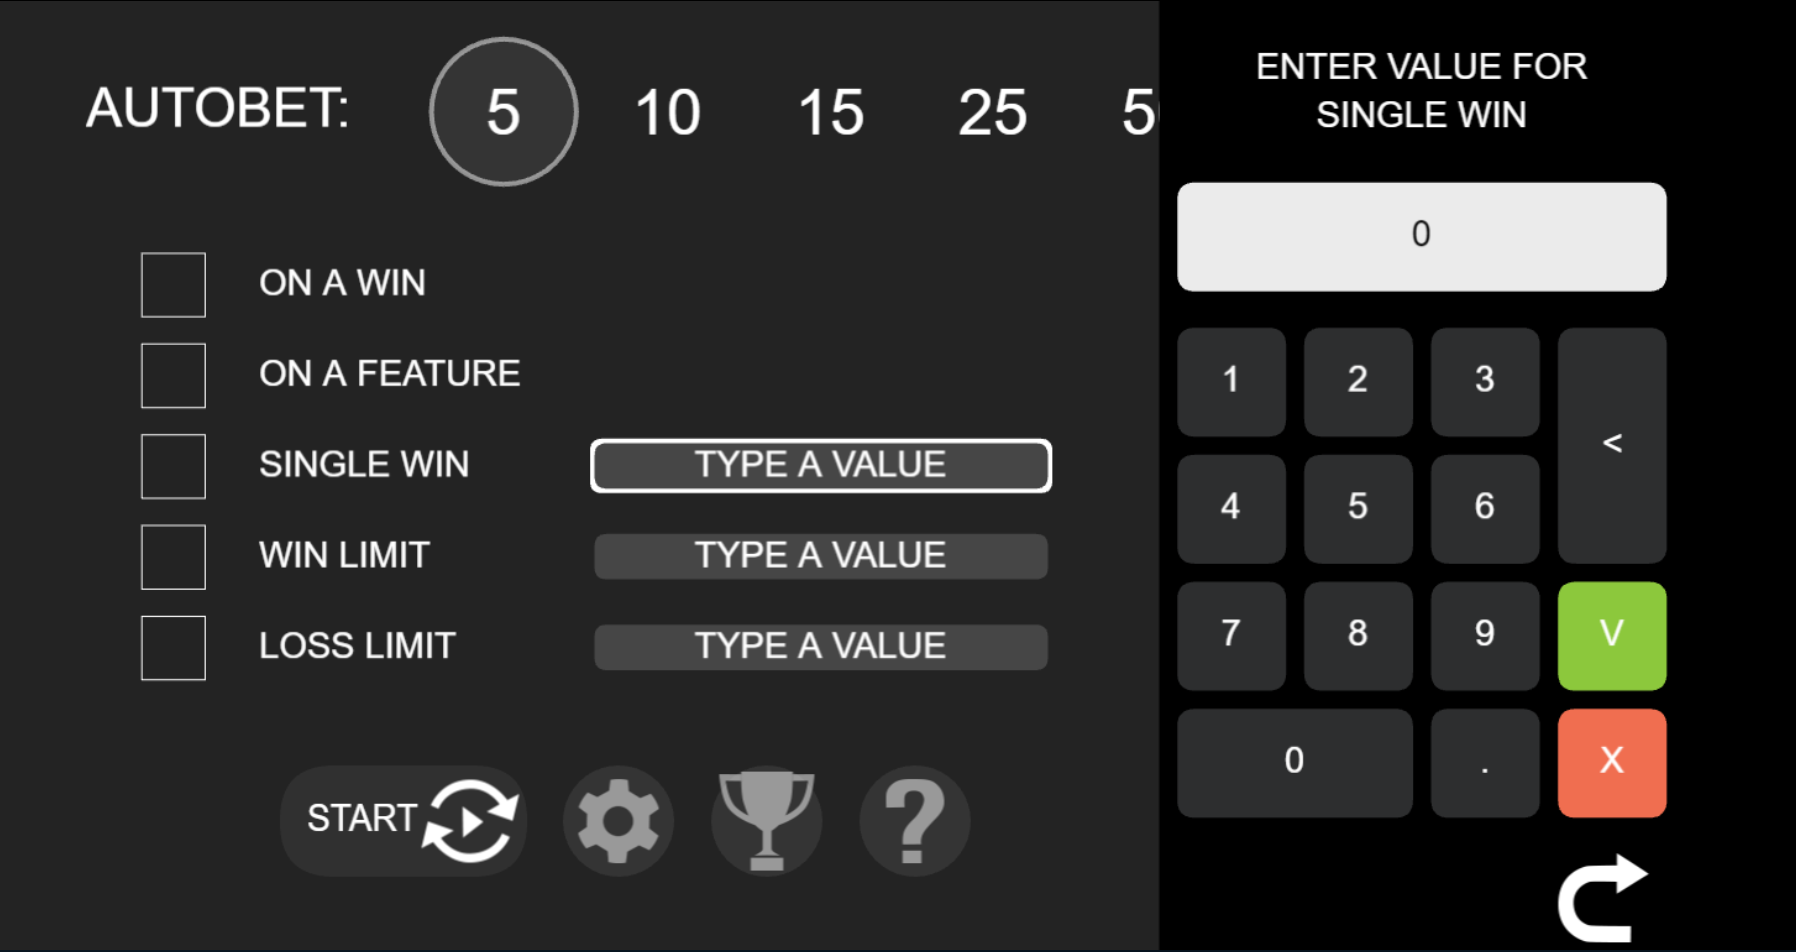 Sharknado autobet settings for mobile.png